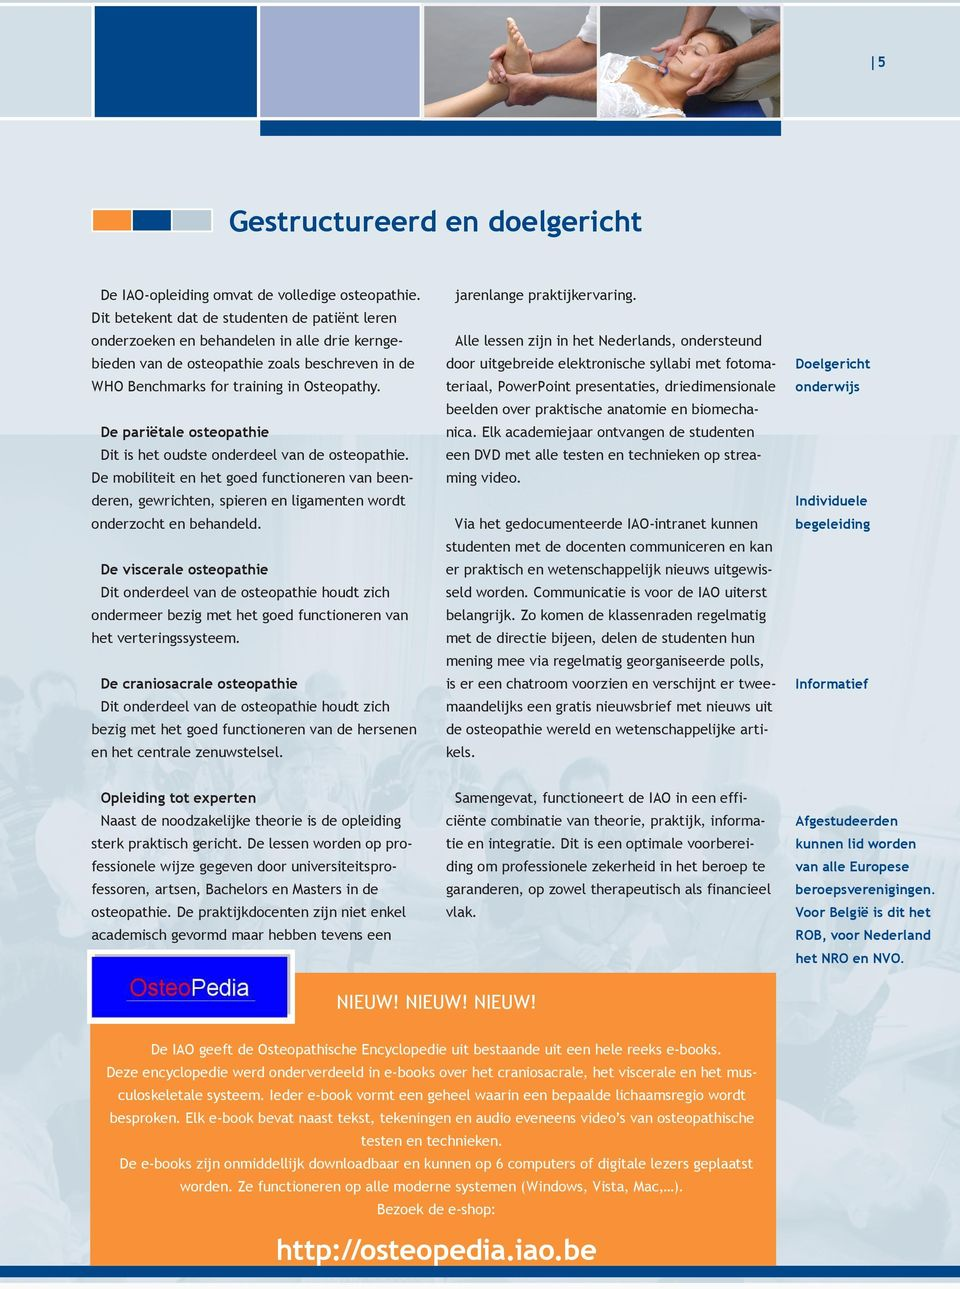 uitgebreide elektronische syllabi met fotoma- Doelgericht WHO Benchmarks for training in Osteopathy.